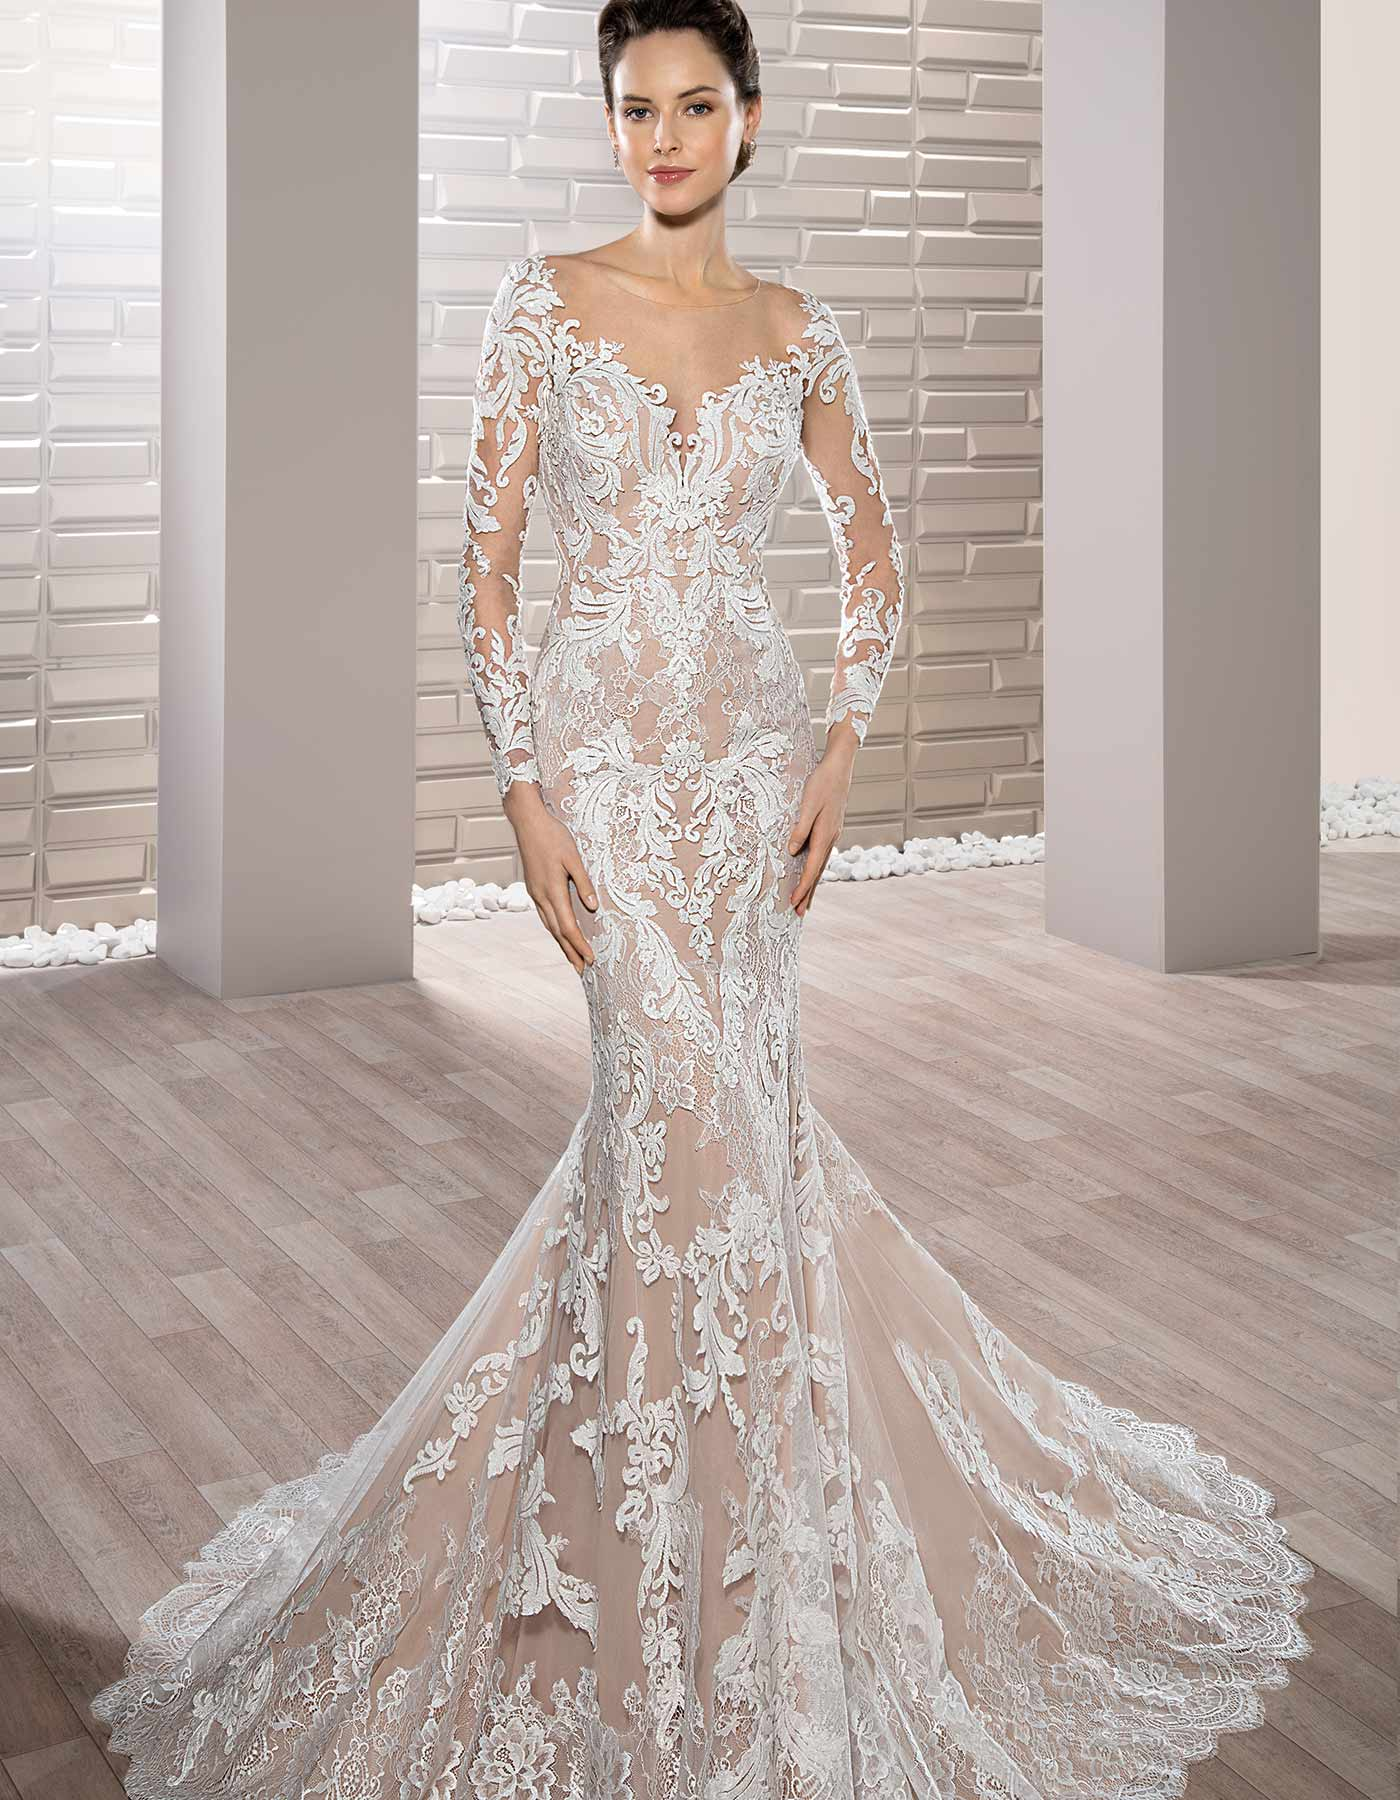 Bold Lace Wedding Dress With Long Sleeves 717 By Demetrios